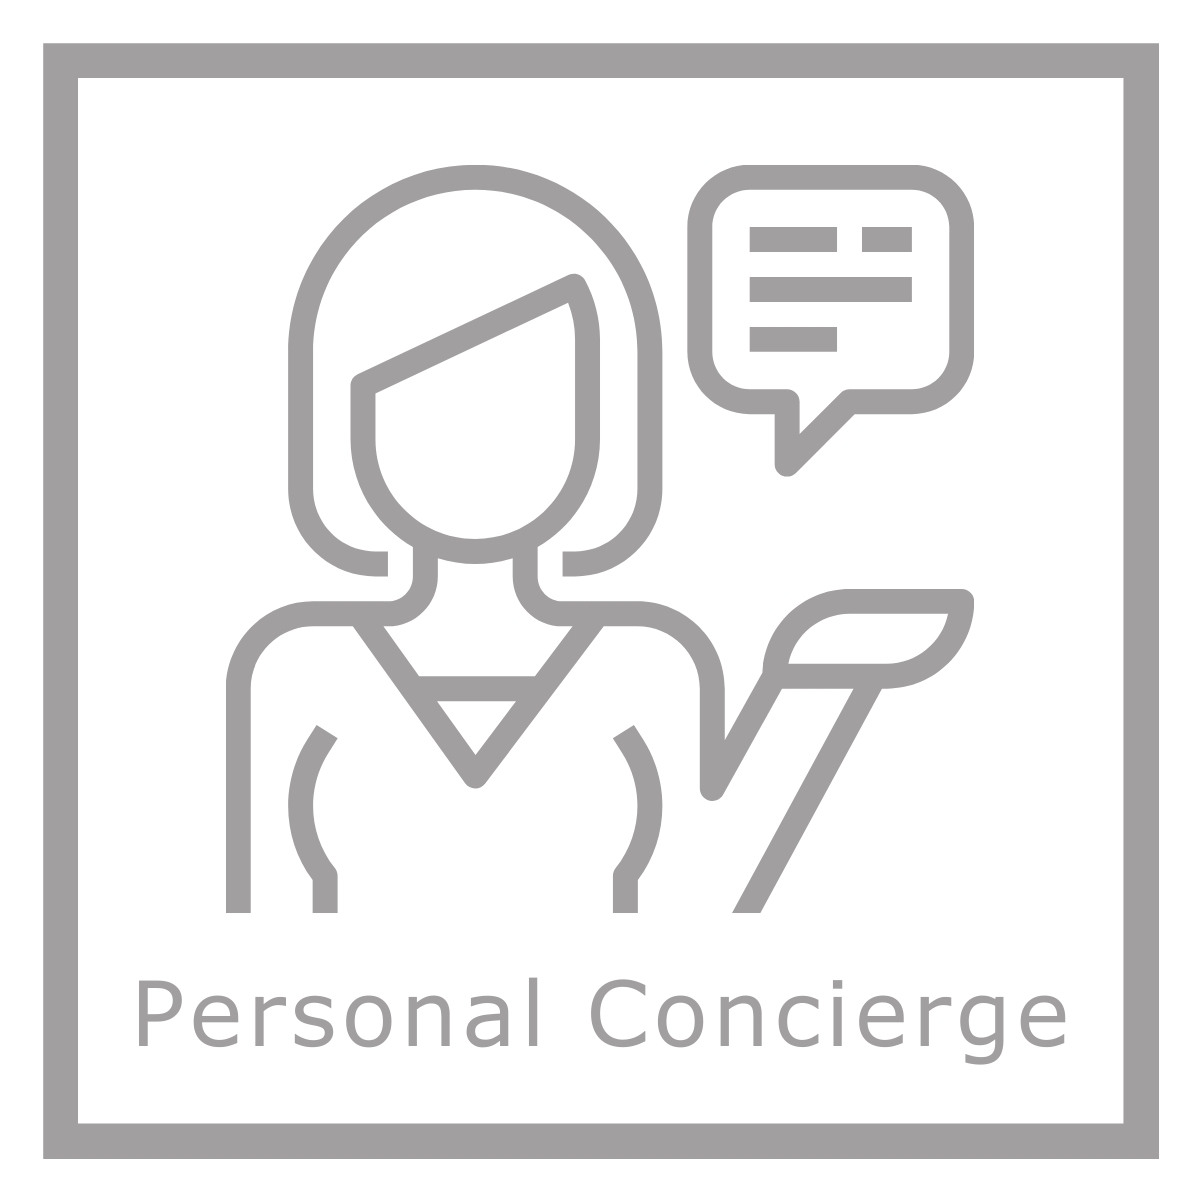 Personal Concierge Service at The Water Tower Lounge- Amenity Center Concierge Services